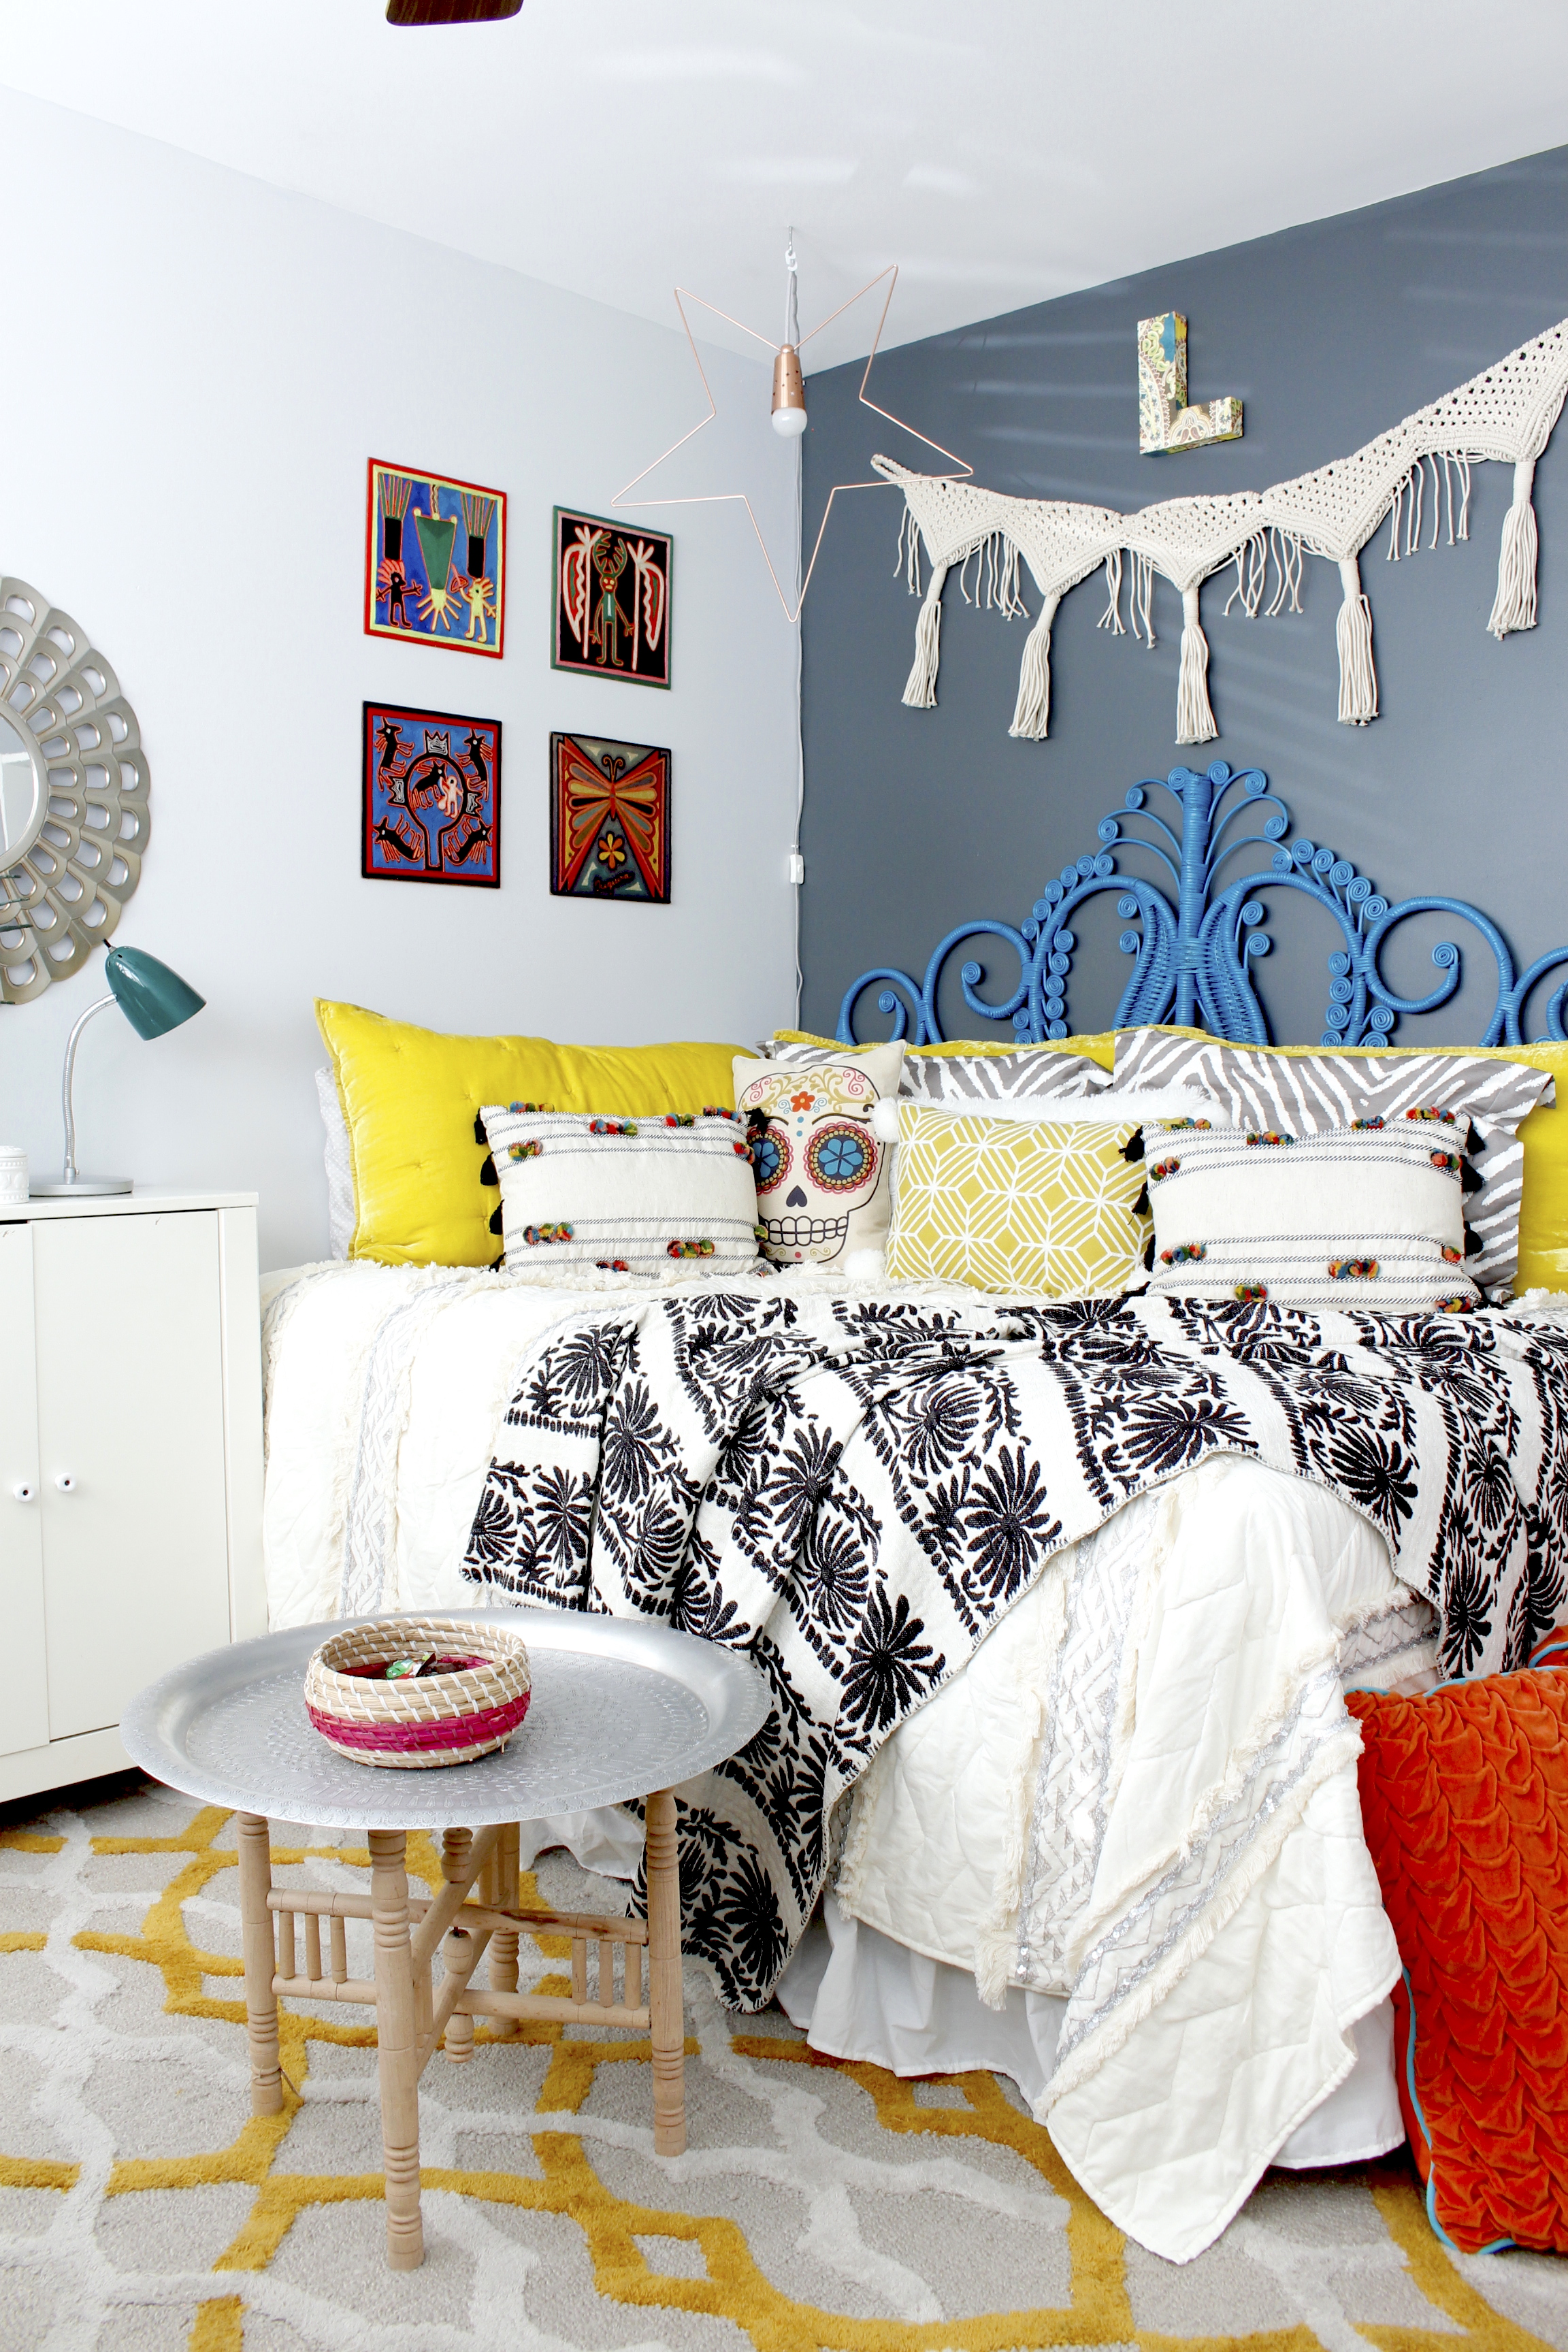 Teen Boho Bedroom Summer 2018 Marilynn Taylor Diy Design Coach